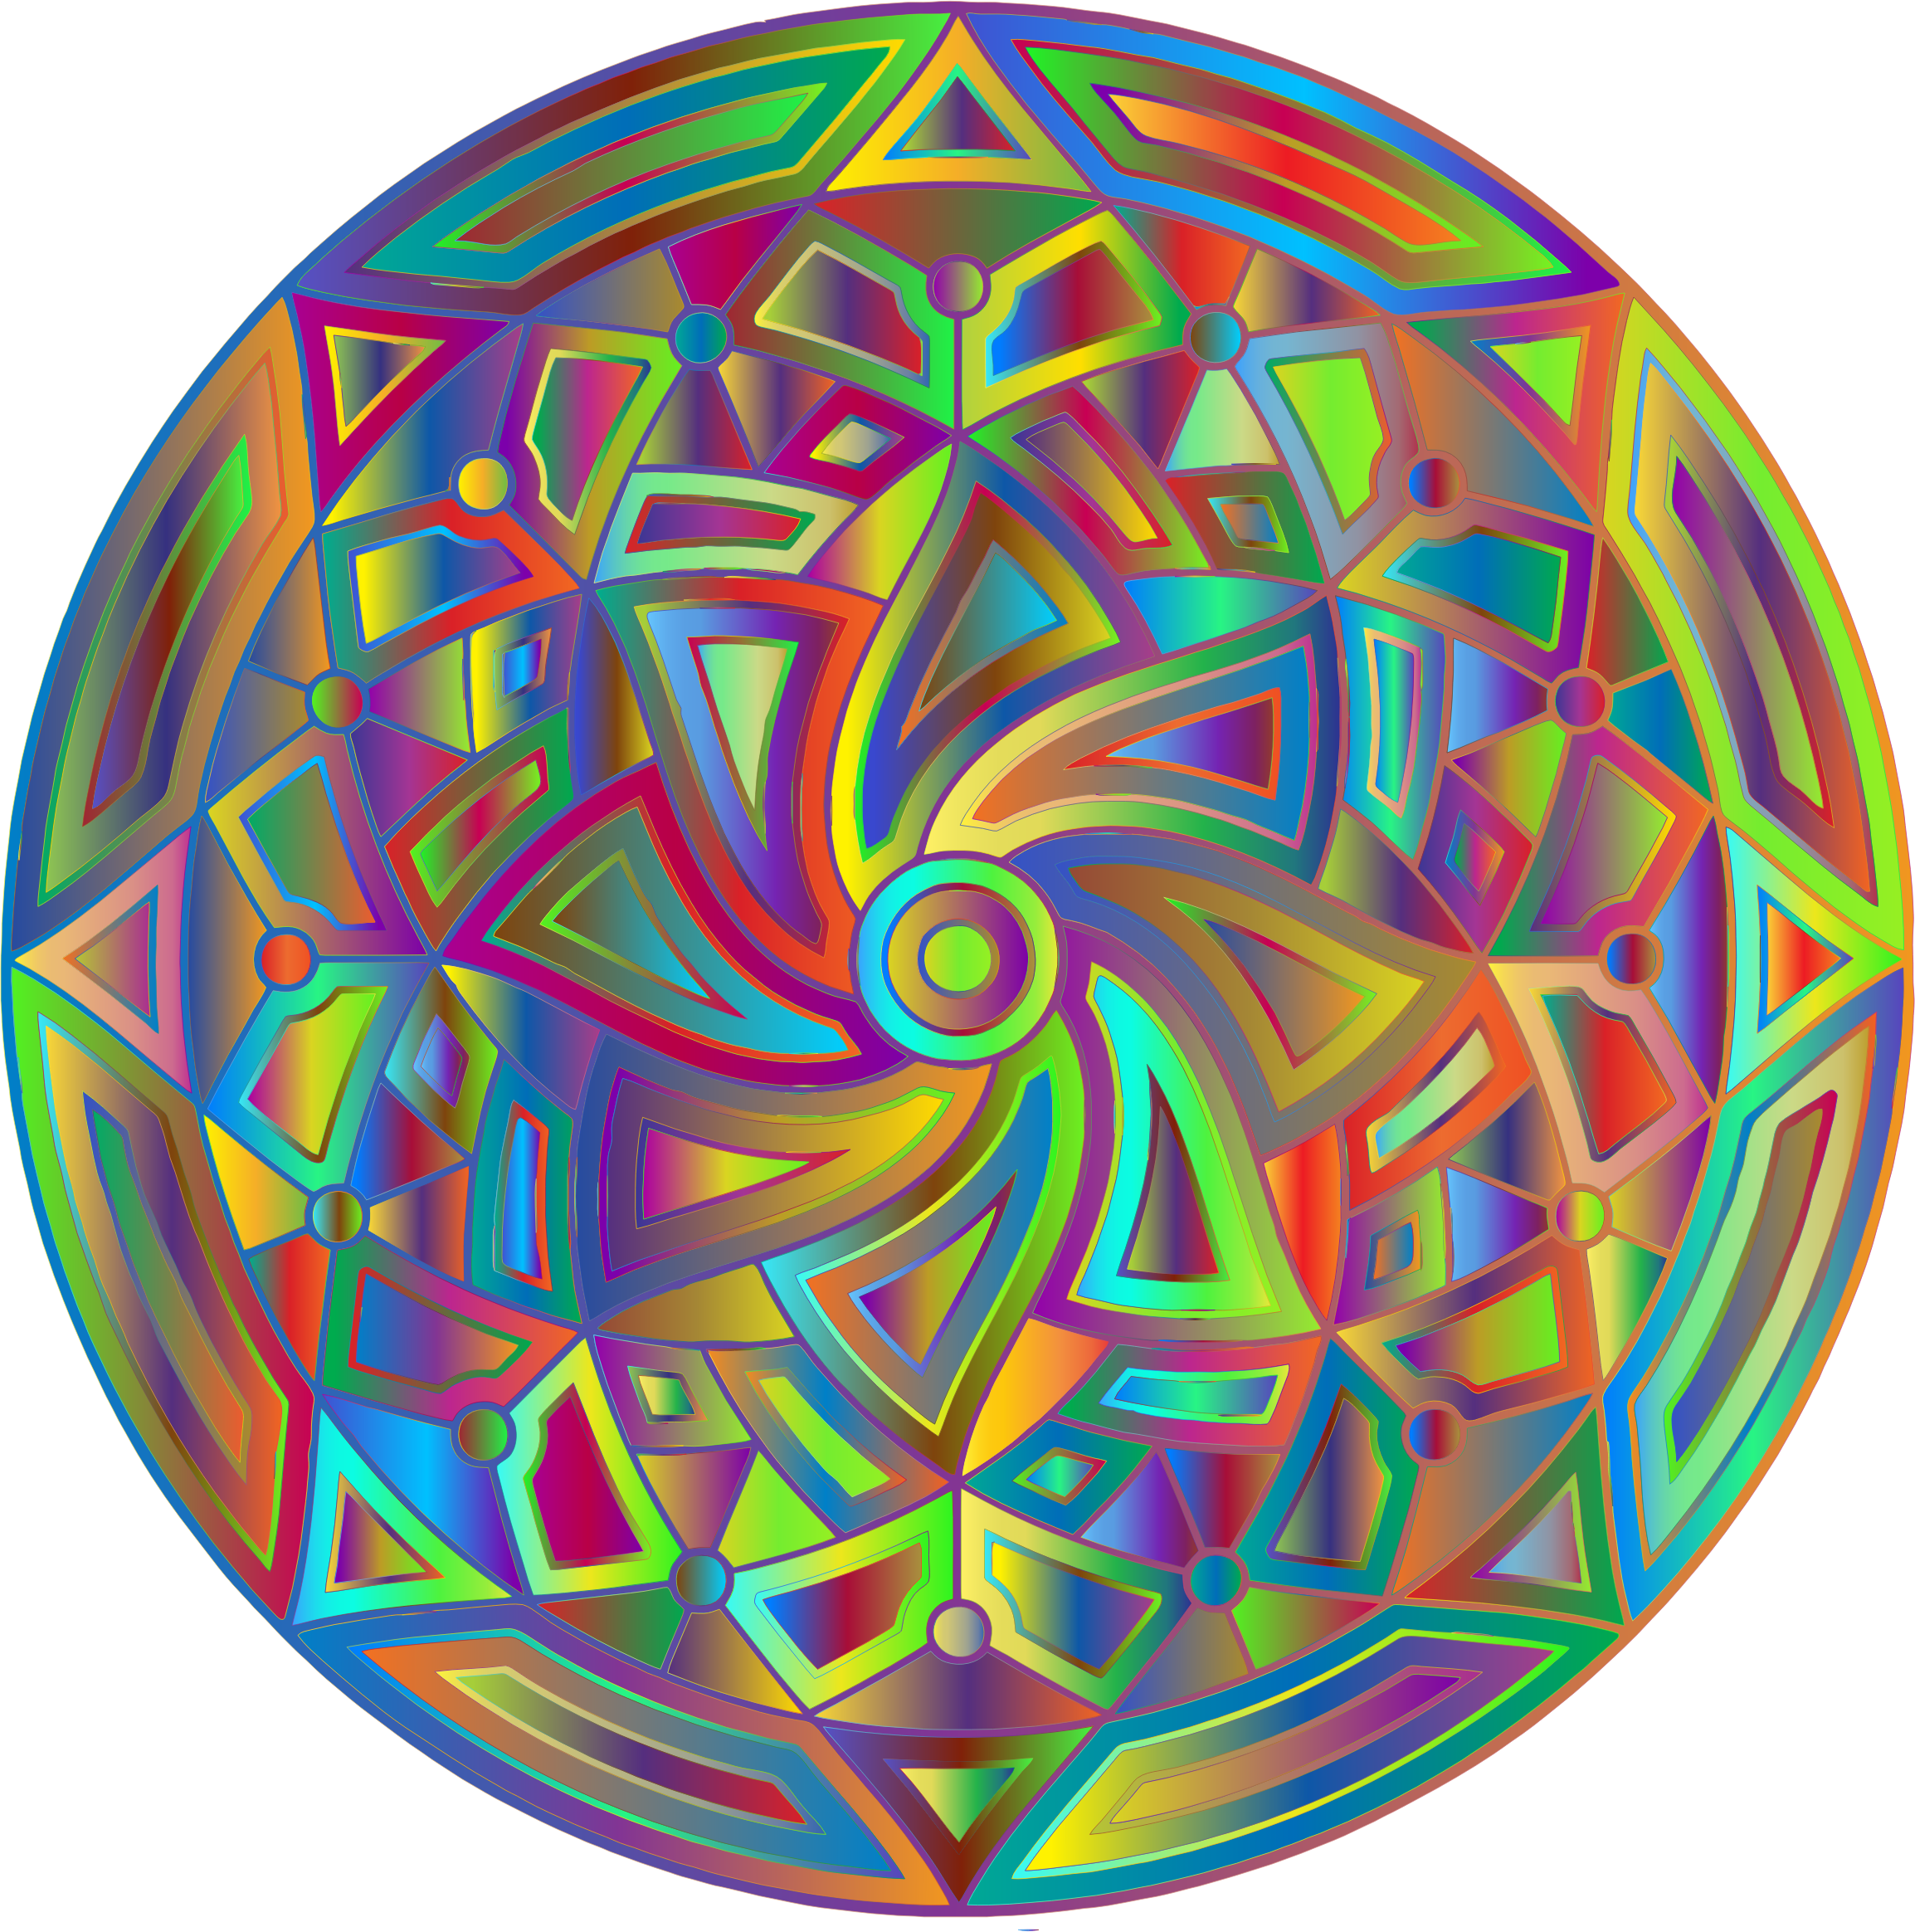 Round Mandala Design Prismatic 2 by GDJ